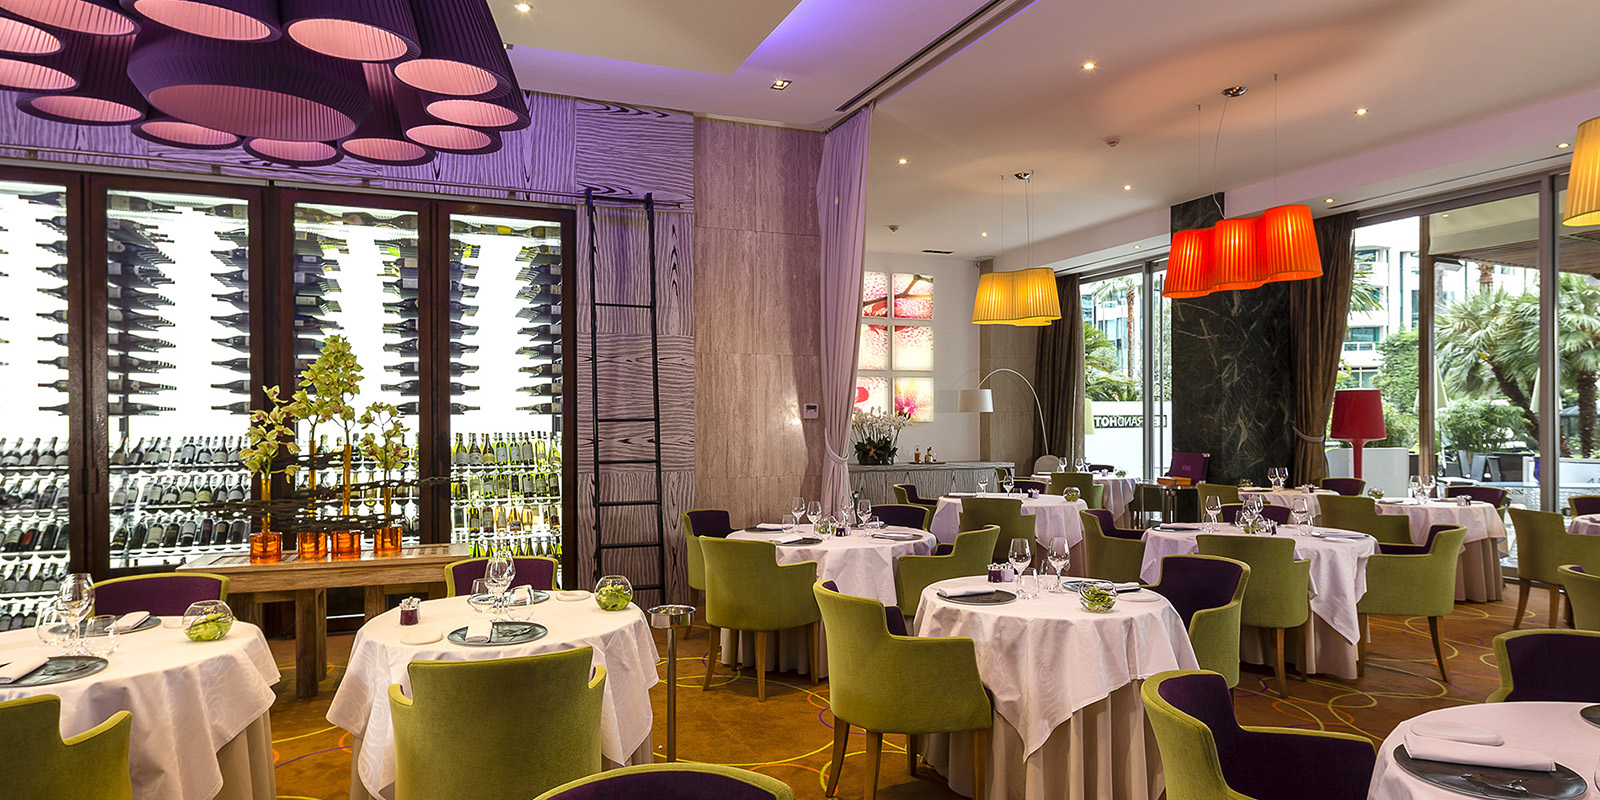 Le Grand Hotel Cannes Restaurant Fashionela